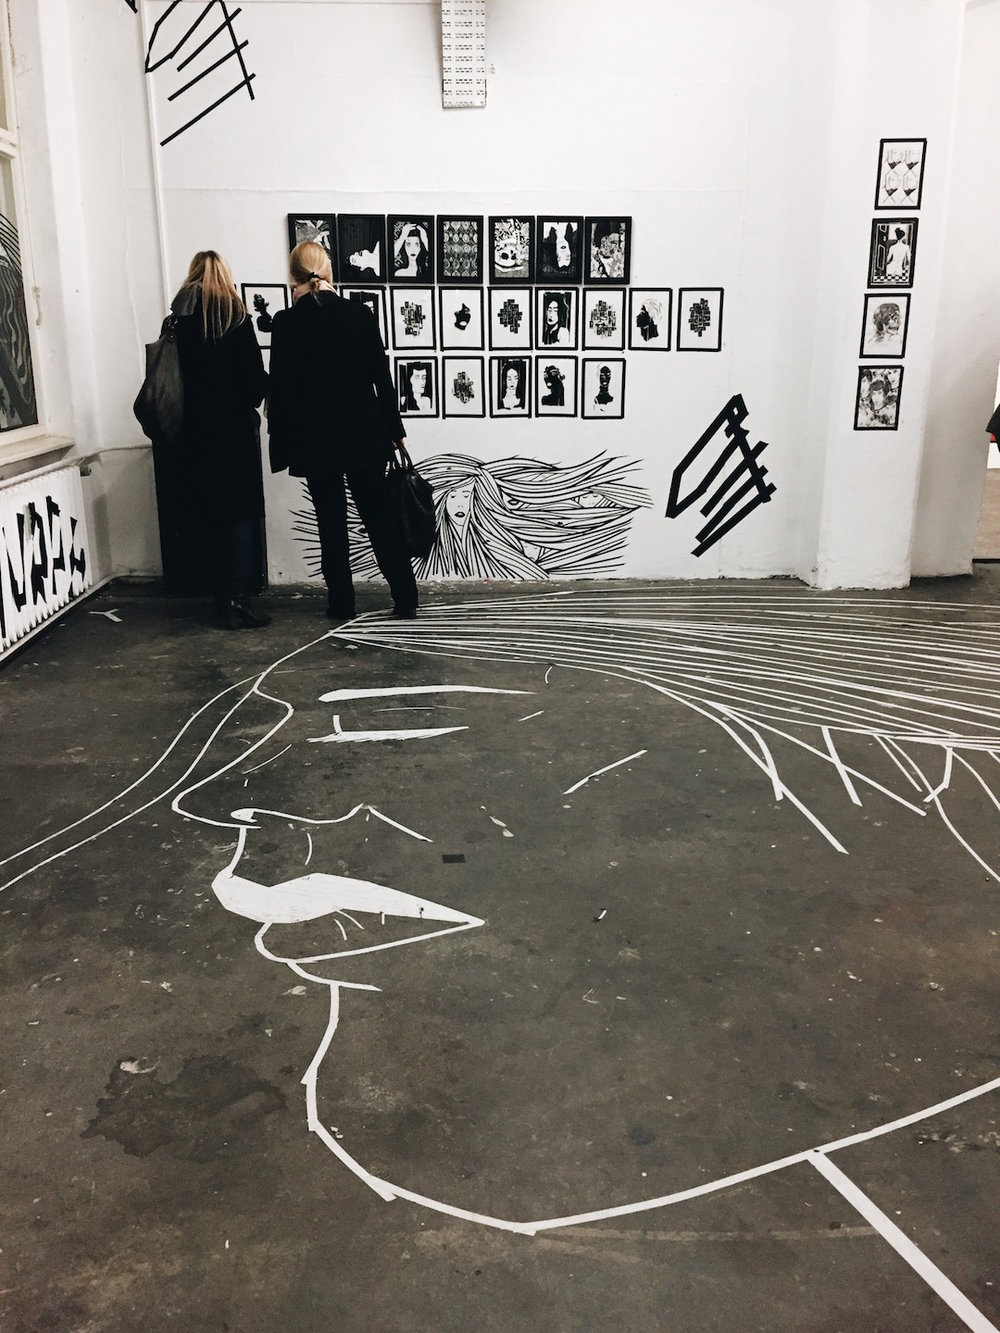 Tape art exhibit at Neurotitan